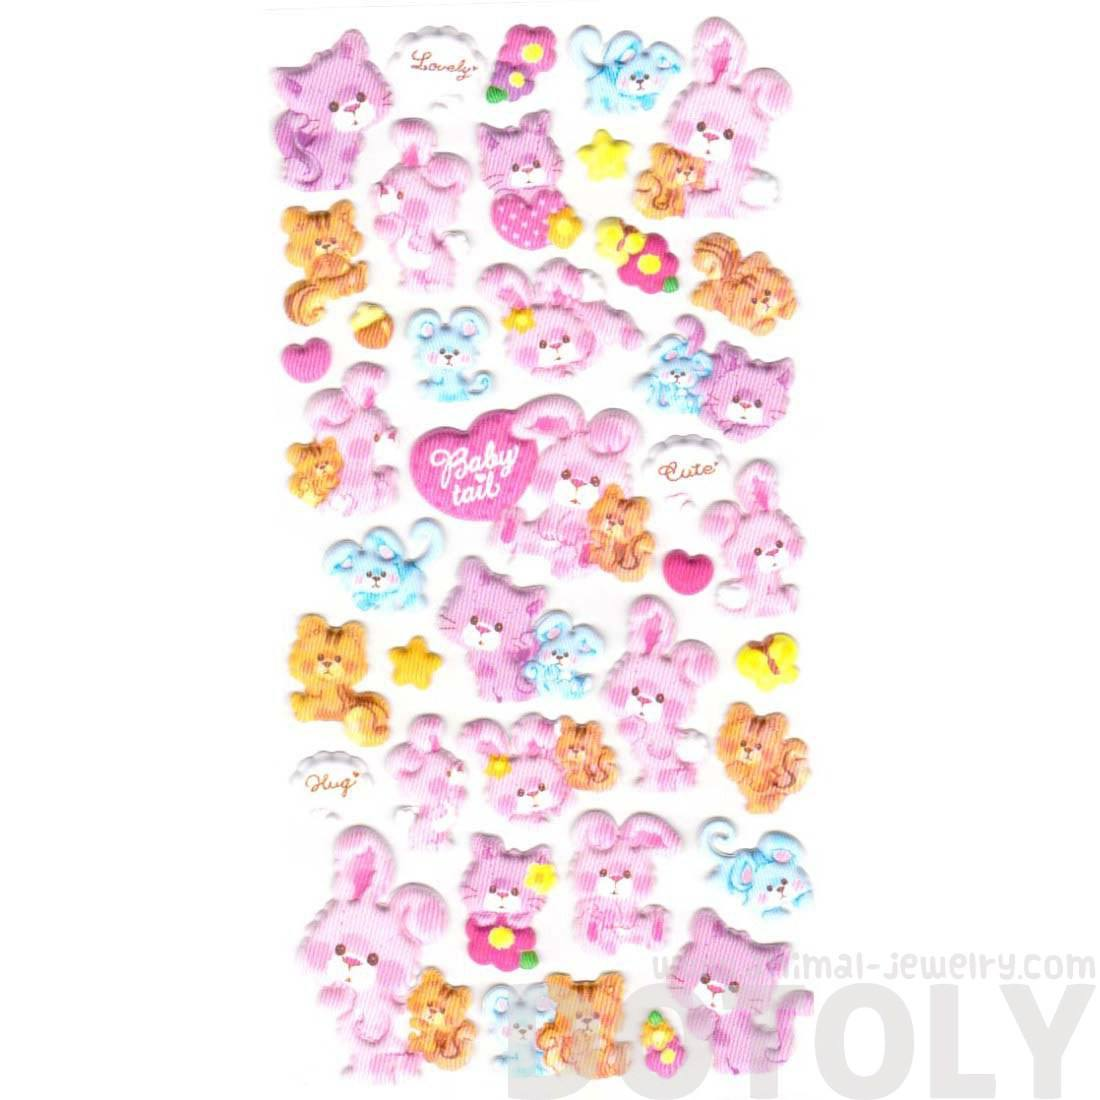 Cute Bunny Rabbit Chipmunk and Kitty Cat Shaped Stickers